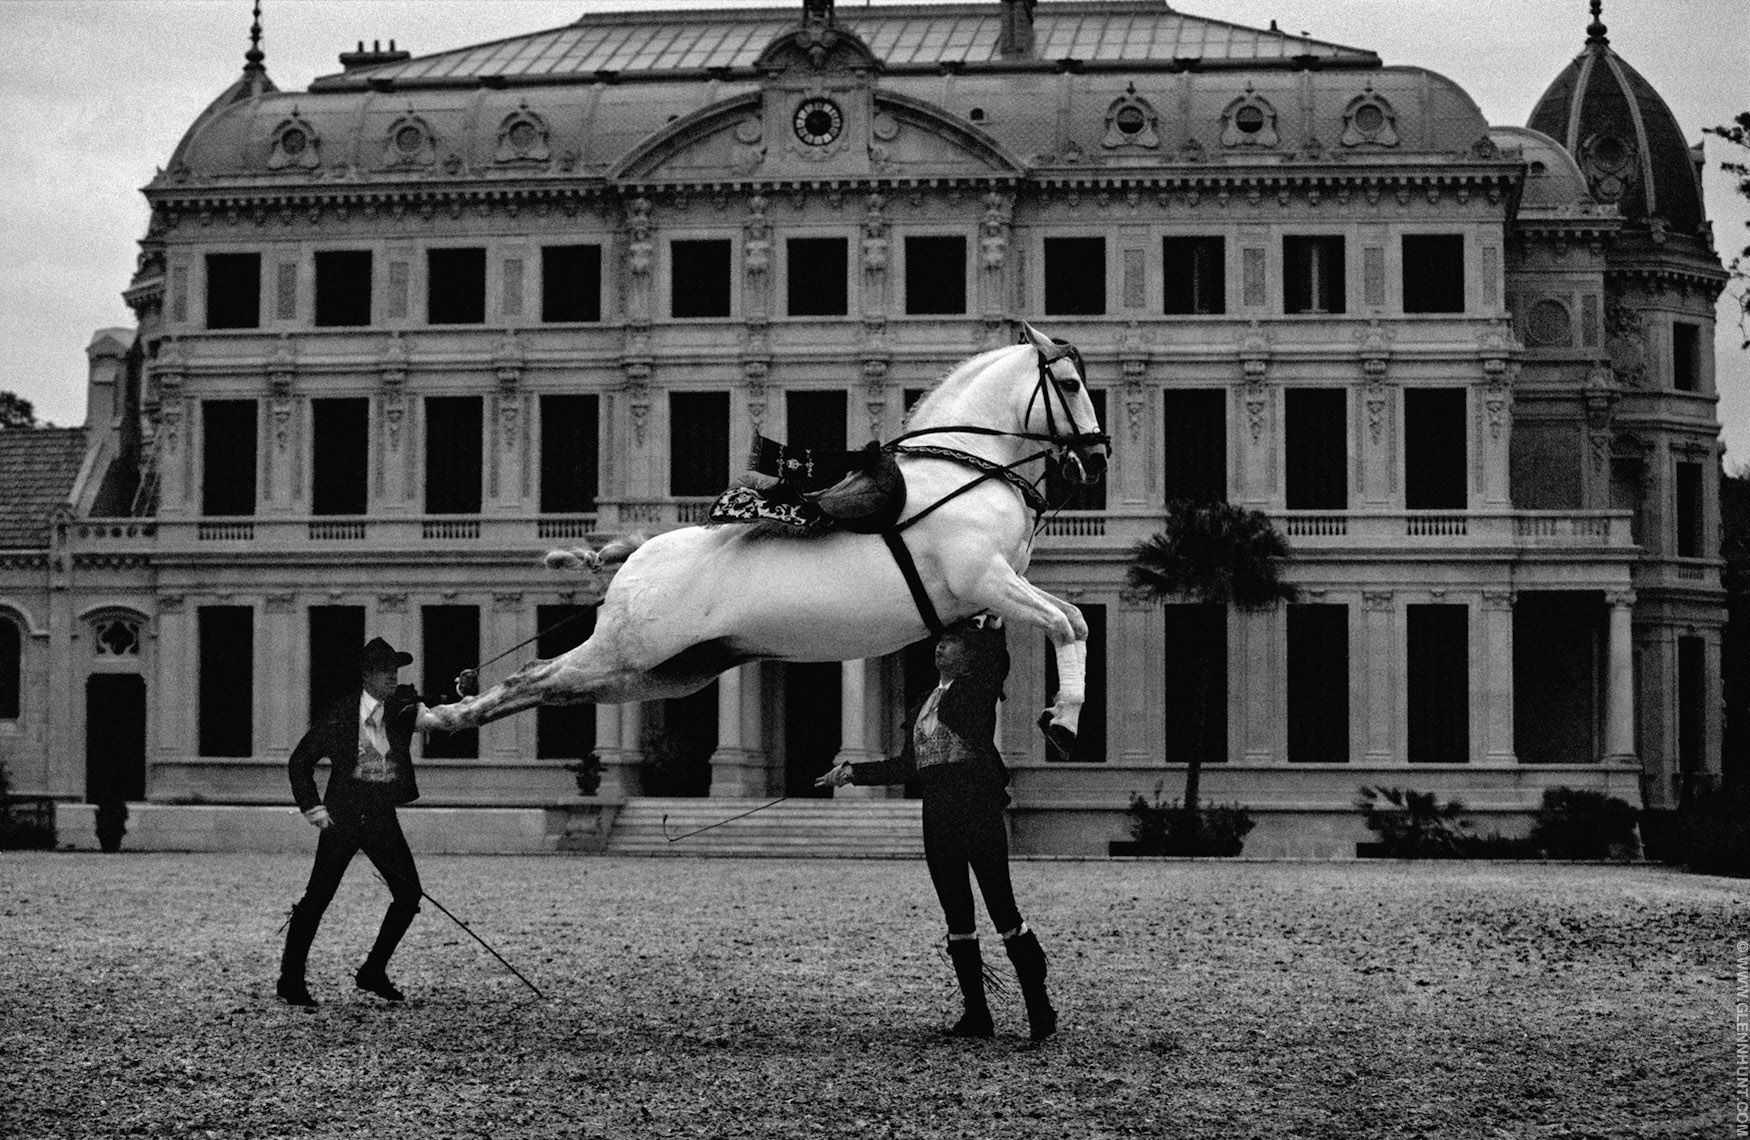 Horses At The Feria Del Caballo And The Royal School Of